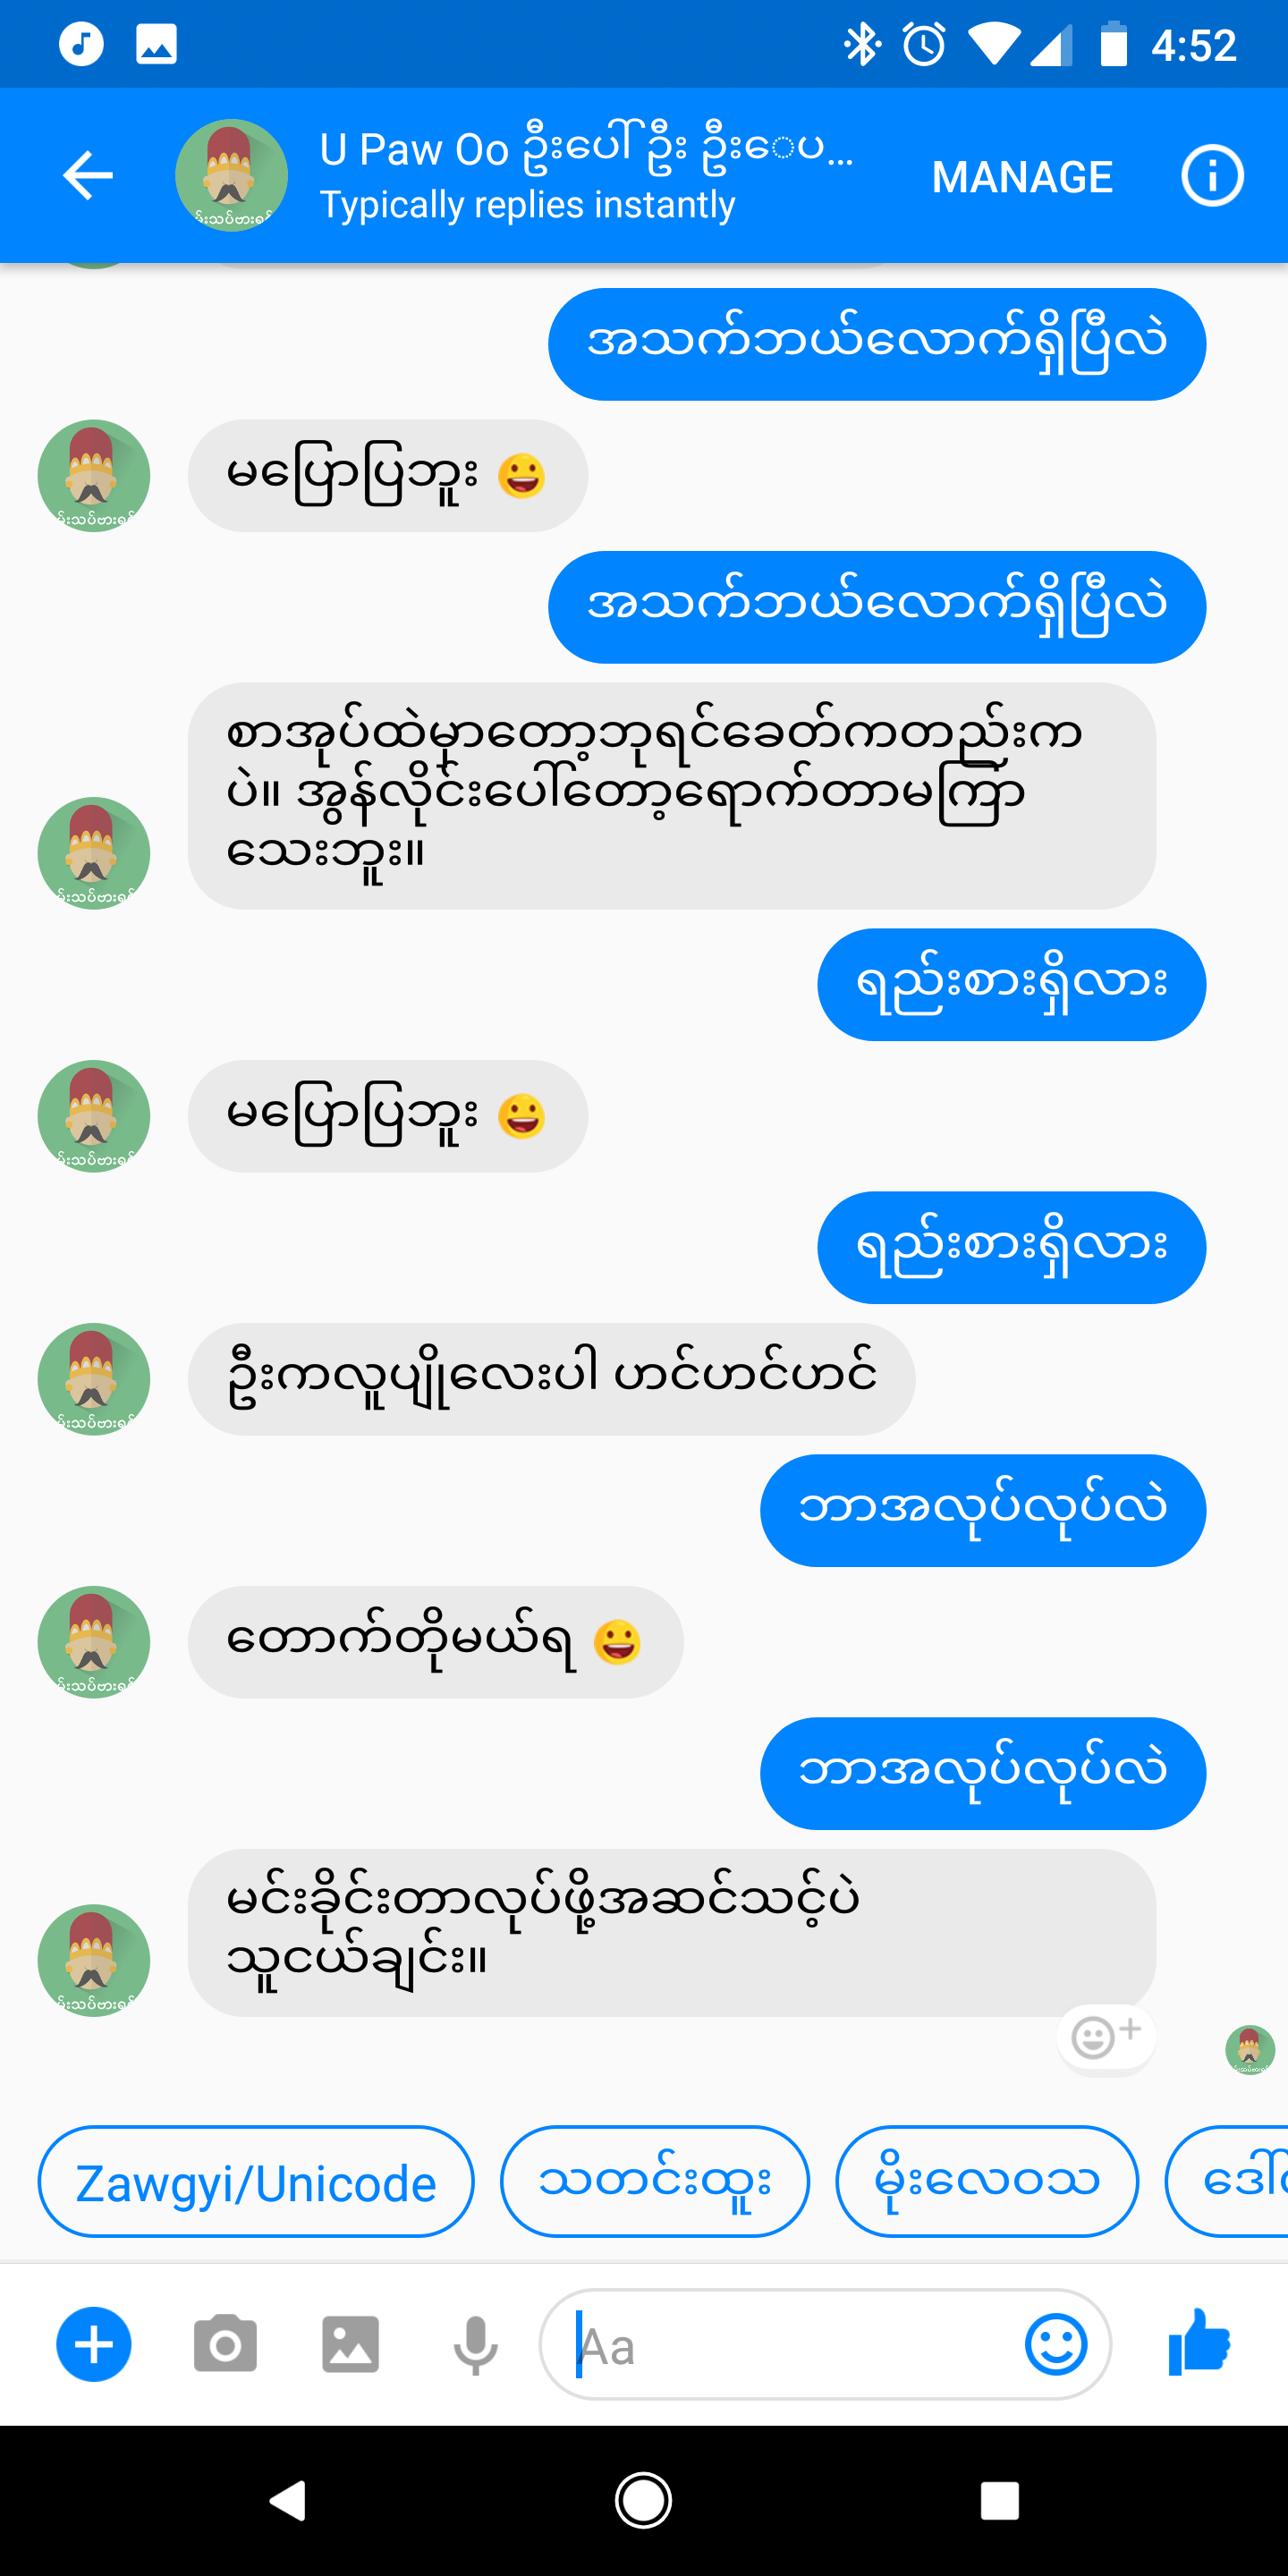 Yair's design work for U Paw Oo Chatbot